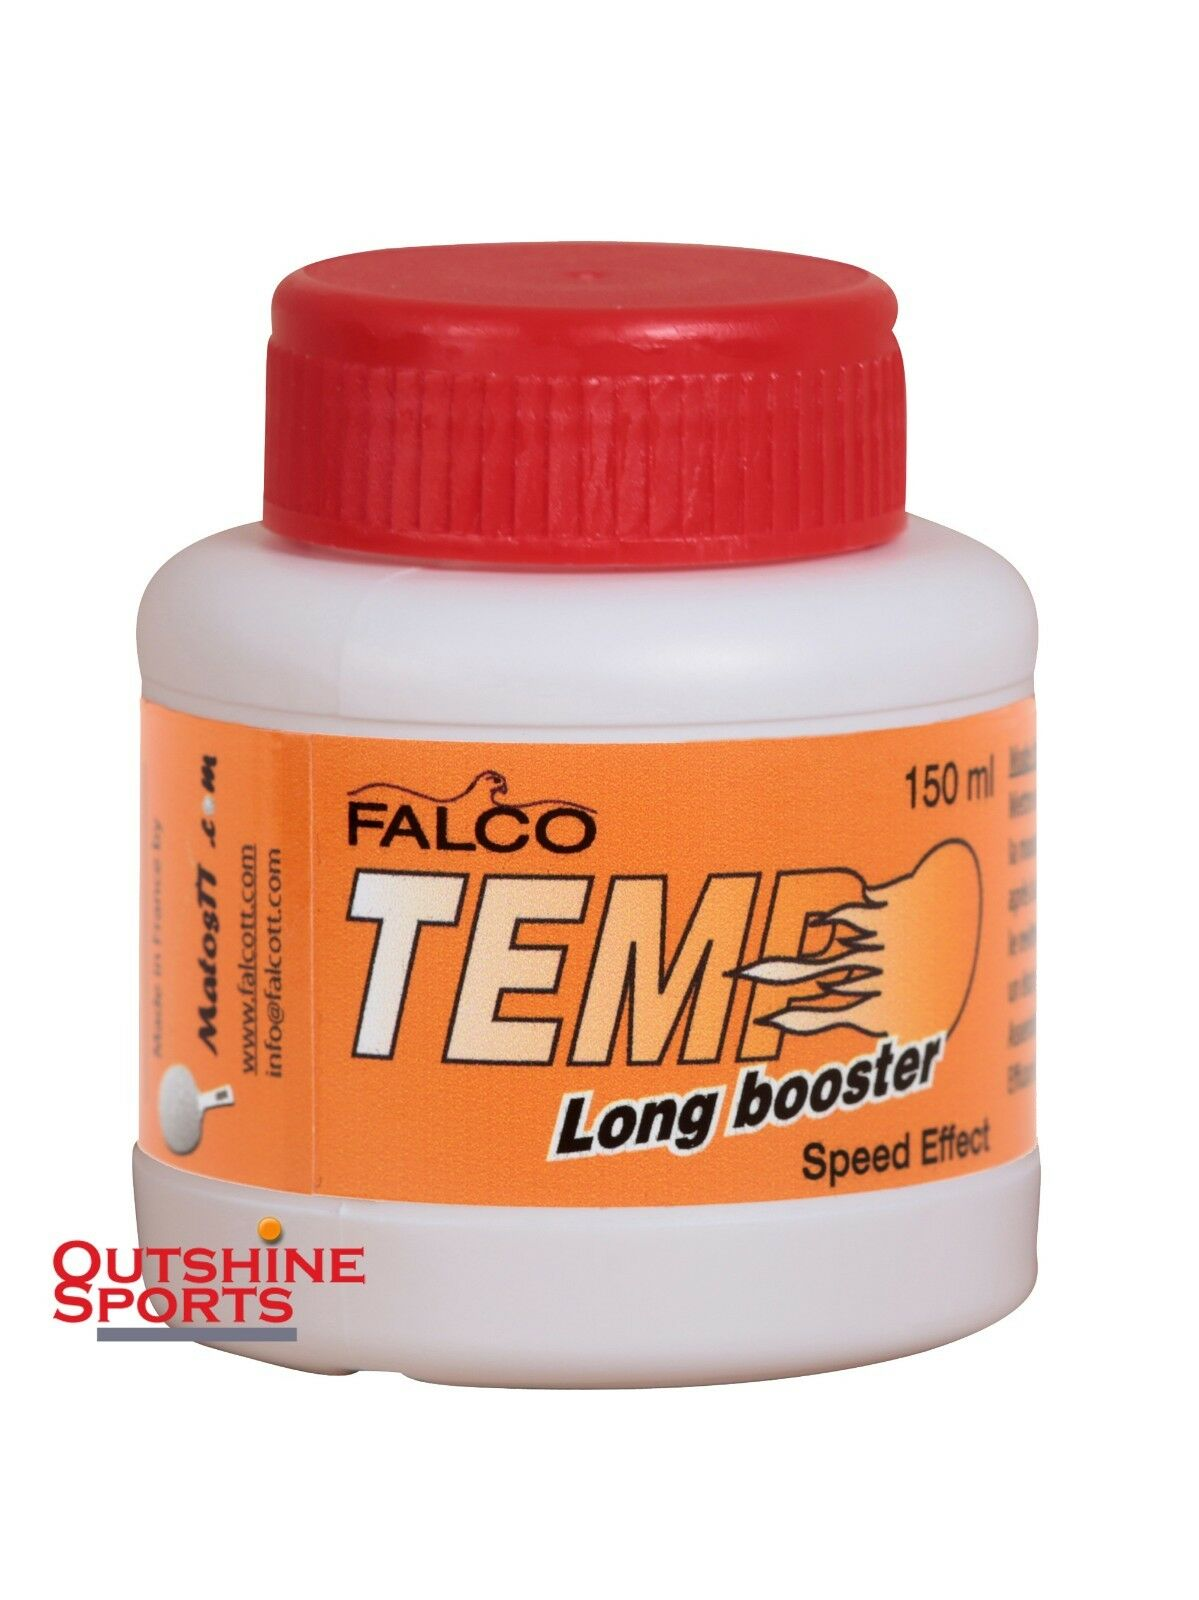 Falco Tempo Long Booster Table Tennis Rubber Glue  Booster